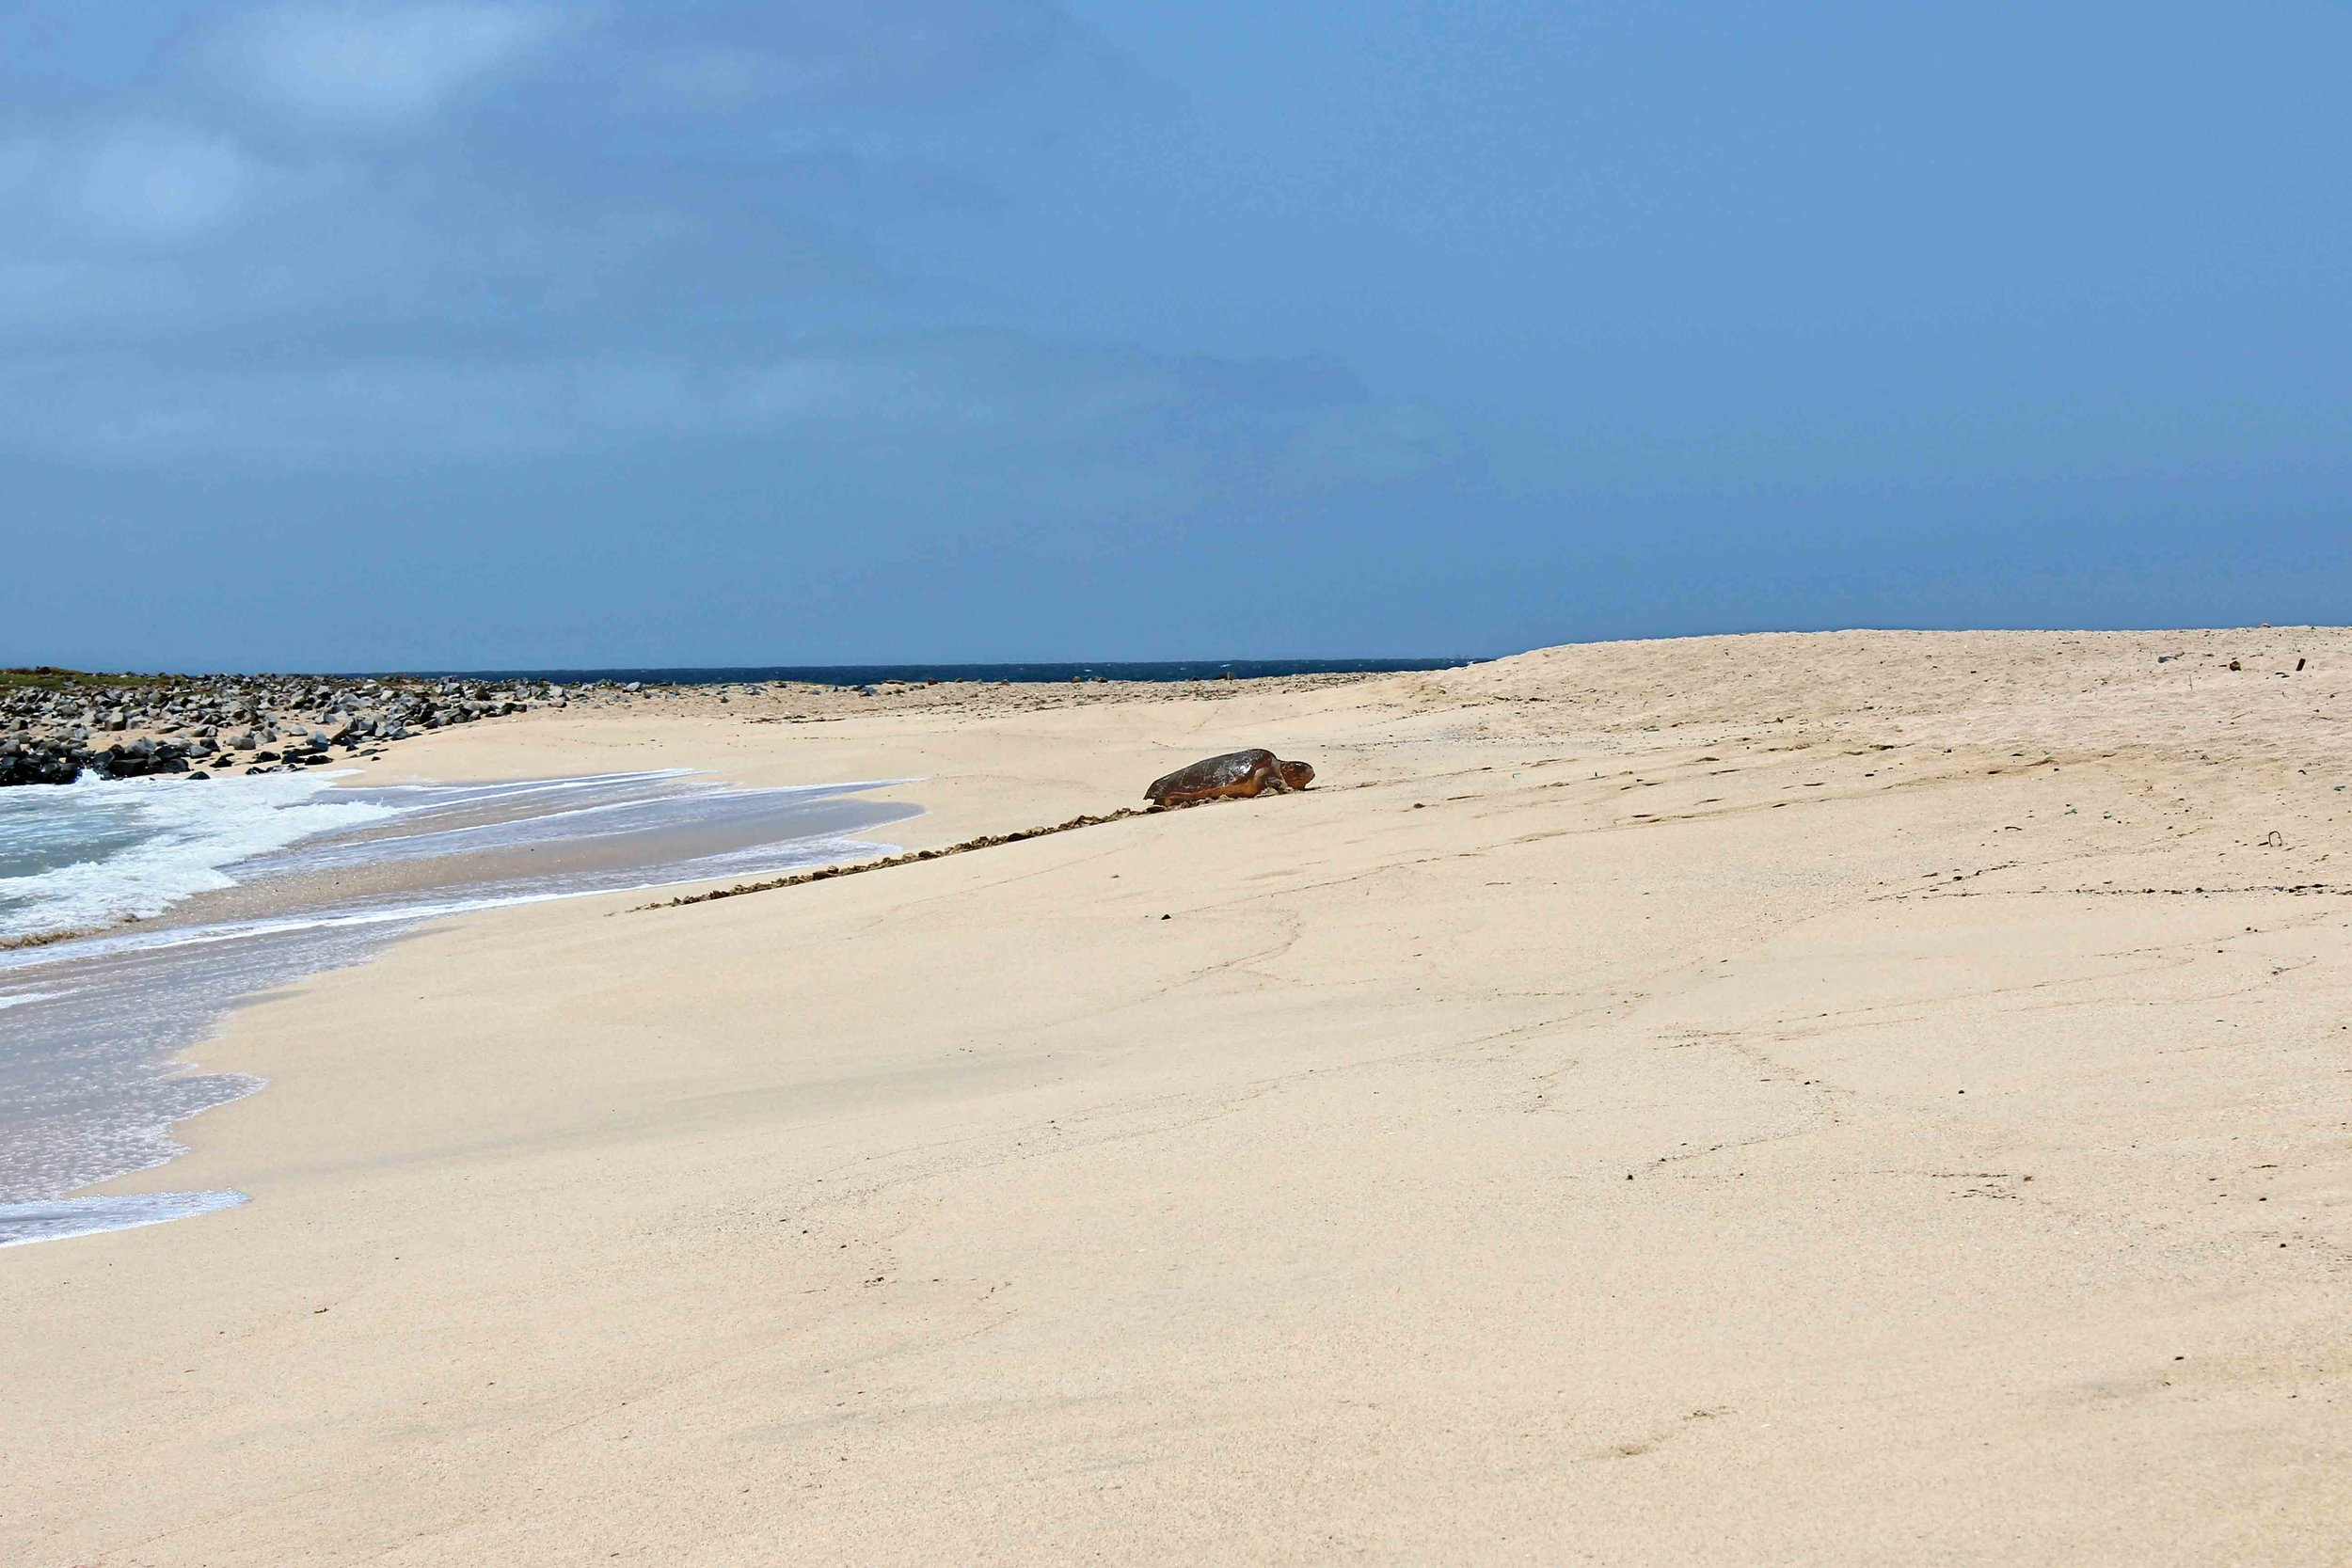 A lone loggerhead comes ashore to nest in Cabo Verde. © Juliet ten Wolde / Turtle SOS Cabo Verde